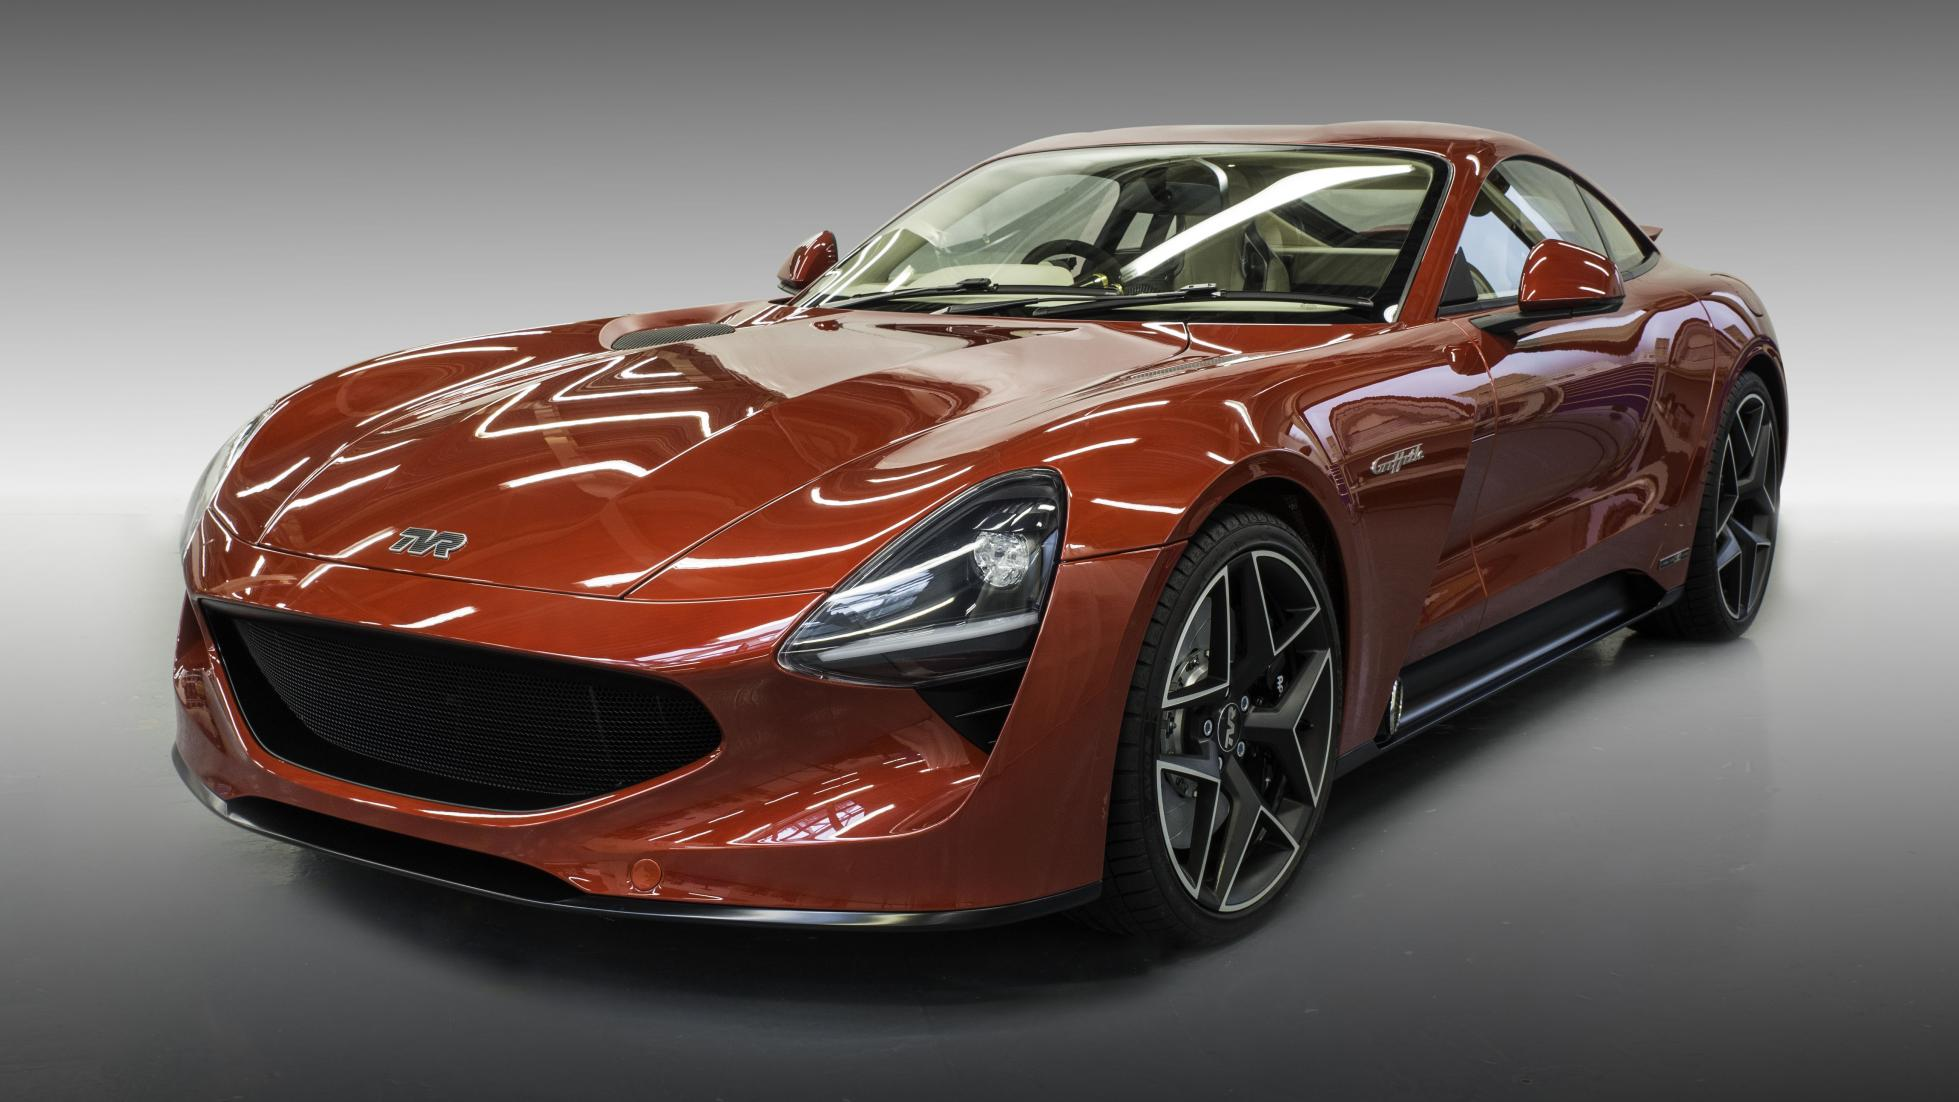 2018 tvr griffith convertible rendering looks tantalizing autoevolution. Black Bedroom Furniture Sets. Home Design Ideas